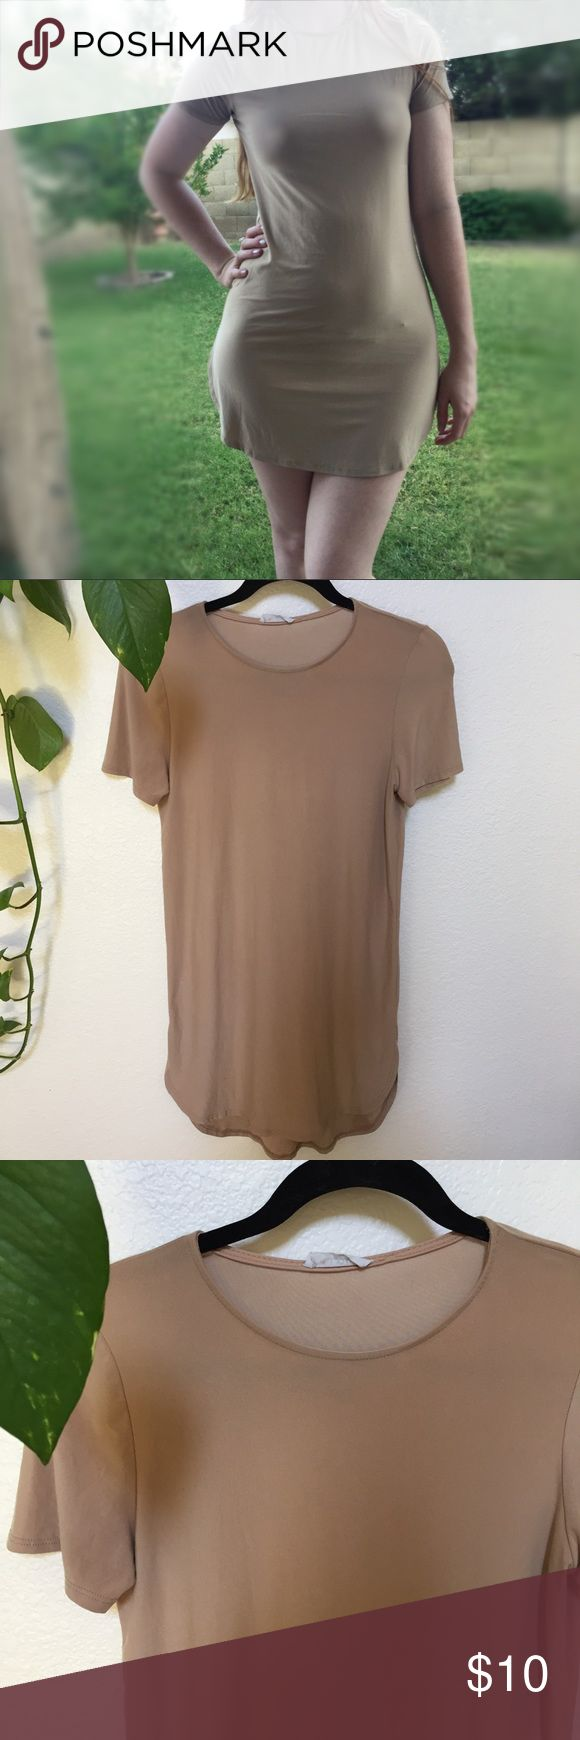 "Soft basic neutral tee dress Soft basic shirt dress/ tunic in a tan neutral shade. Fits more like a tunic on me because I'm so tall, but this would be a perfect basics dress for a shorter girl. 💖✨ a soft silky fabric & super comfy. My measurements are 5'8 and 32c, 28, 40"" for your reference. Nordstrom Dresses Mini"